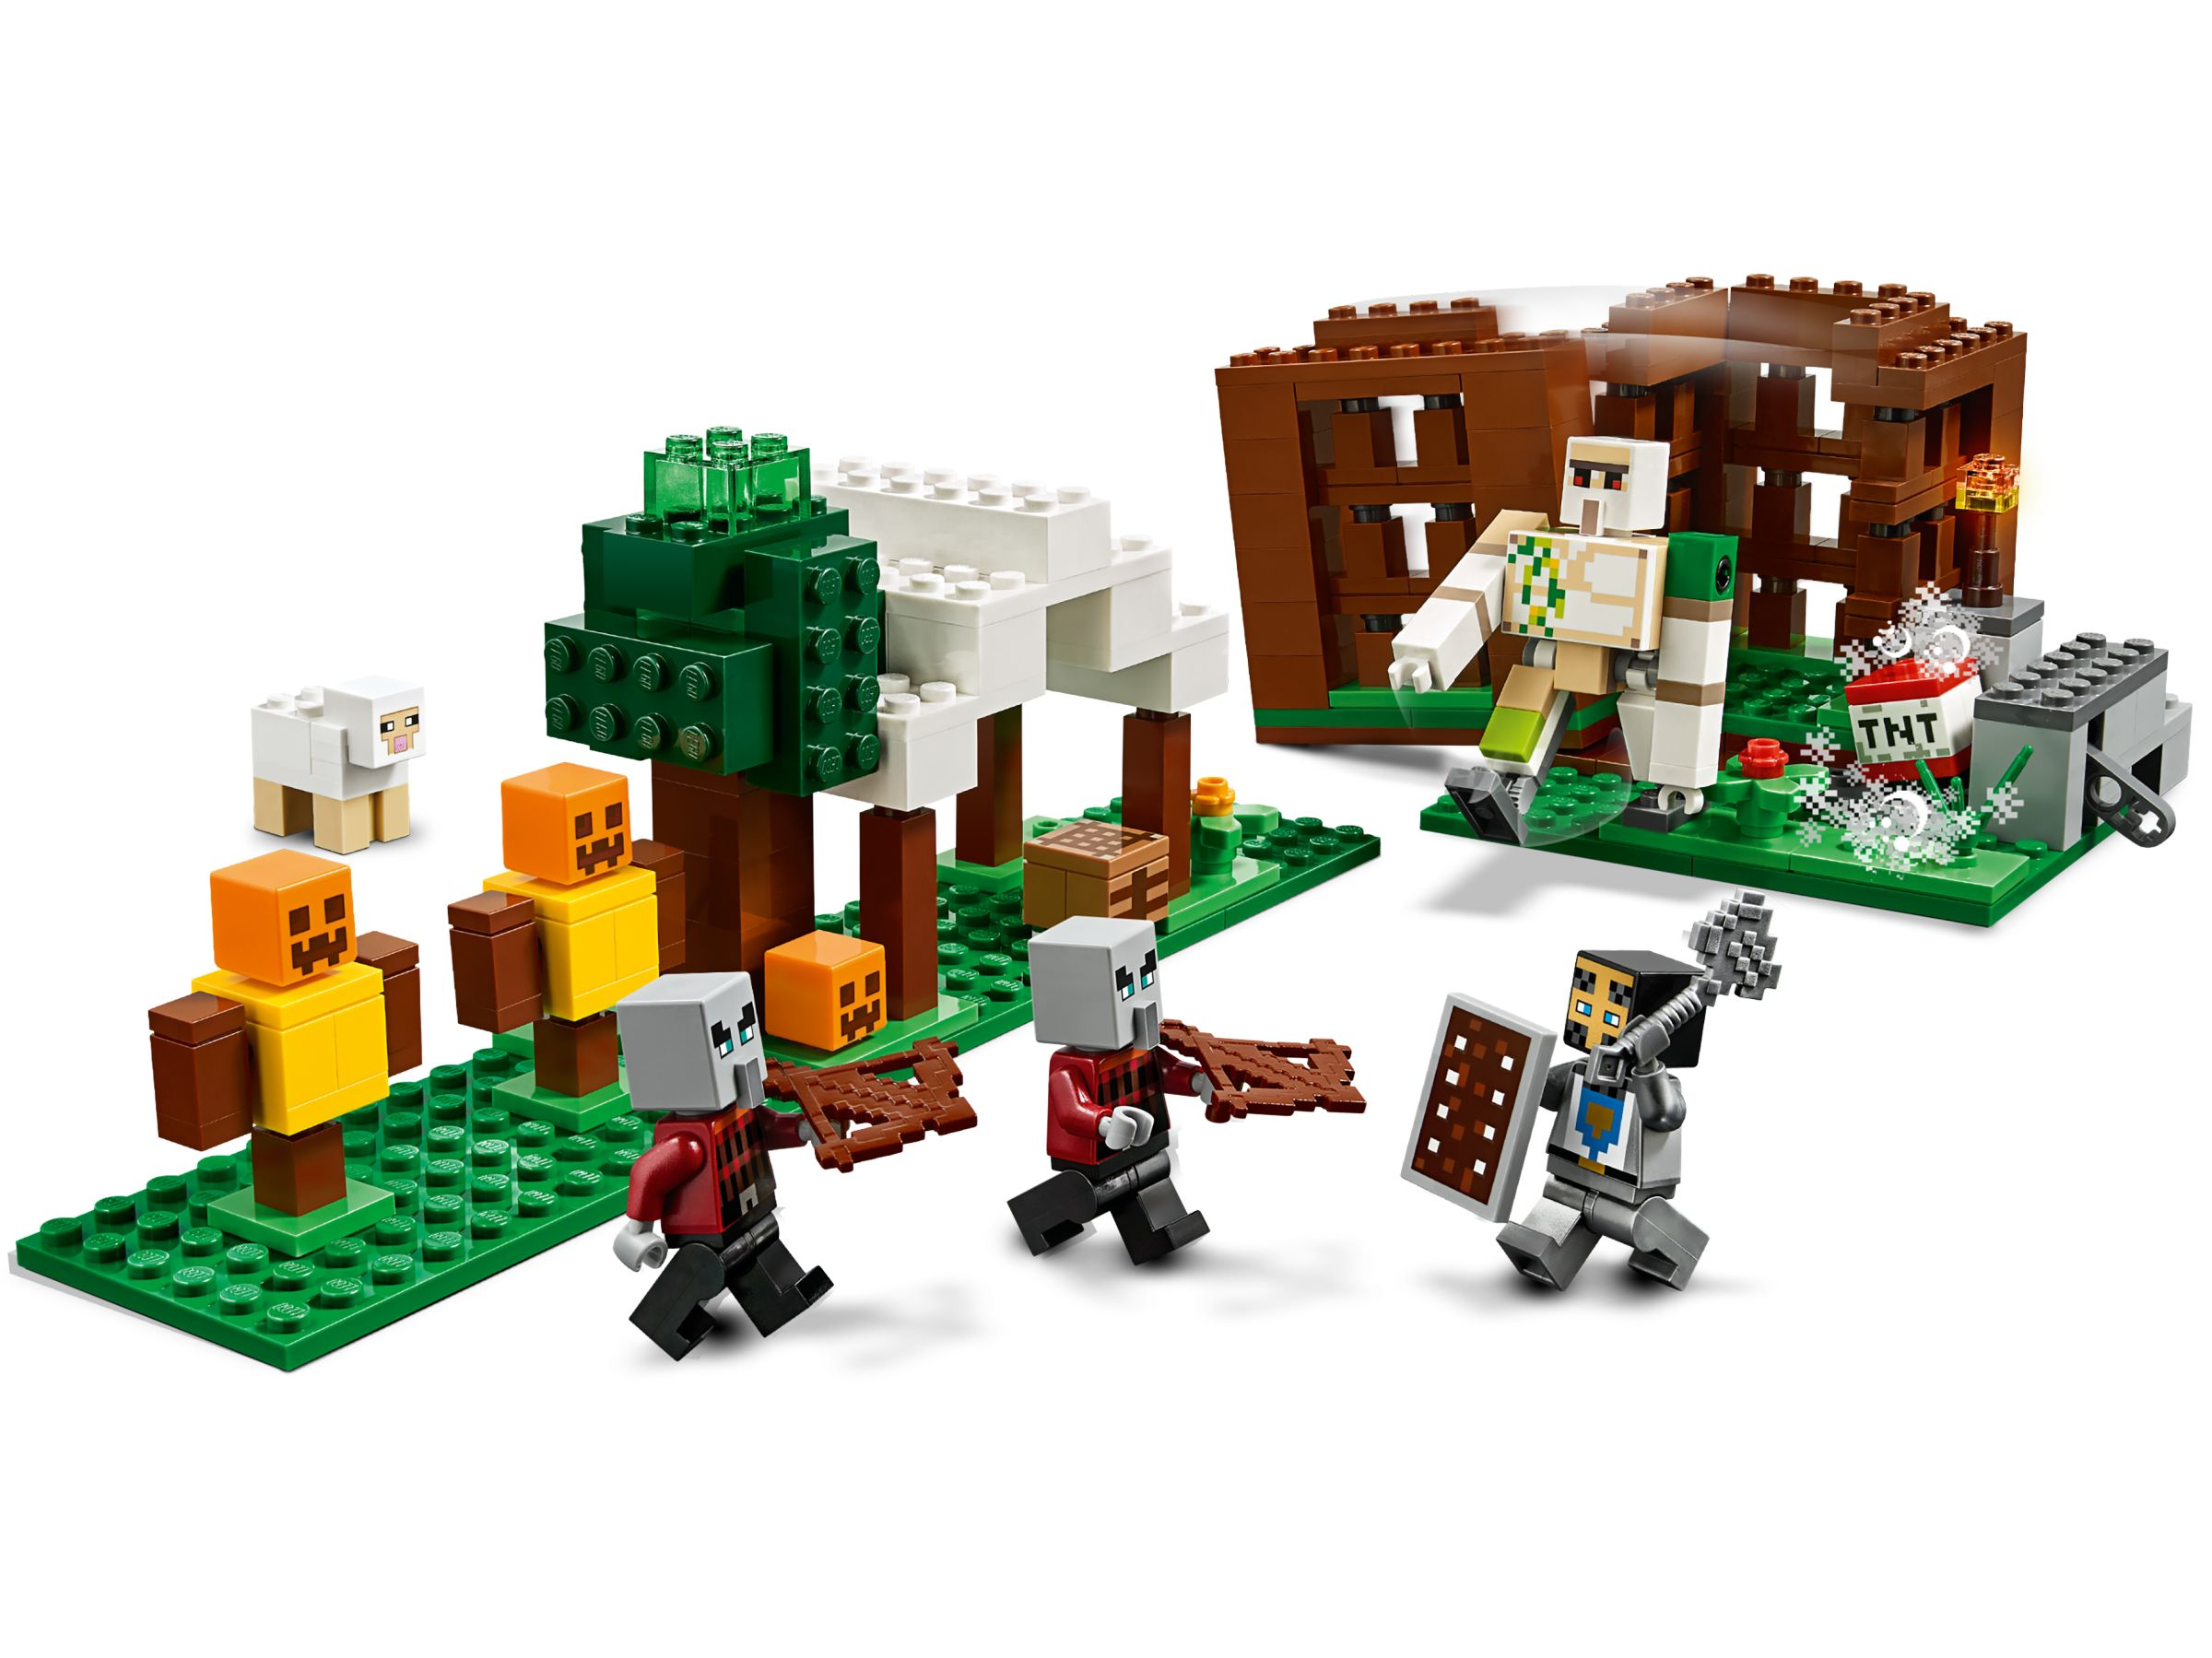 LEGO Minecraft 21159 The Raider Outpost LEGO_21159_alt2.jpg